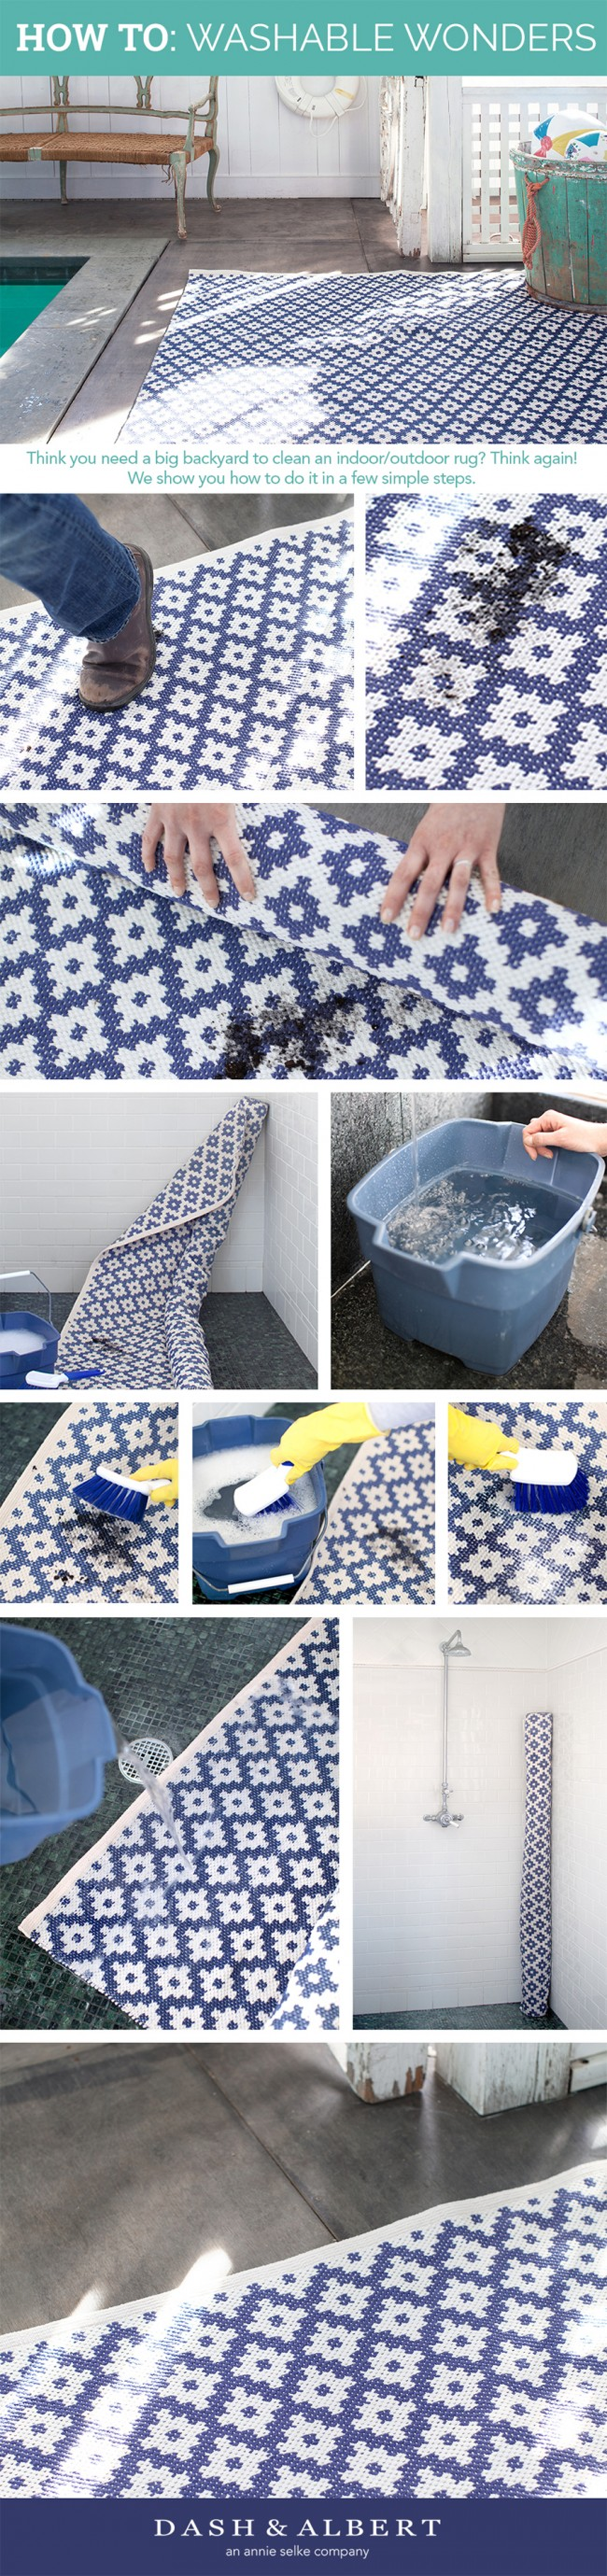 Dash & Albert Indoor Outdoor Rugs Cleaning How To